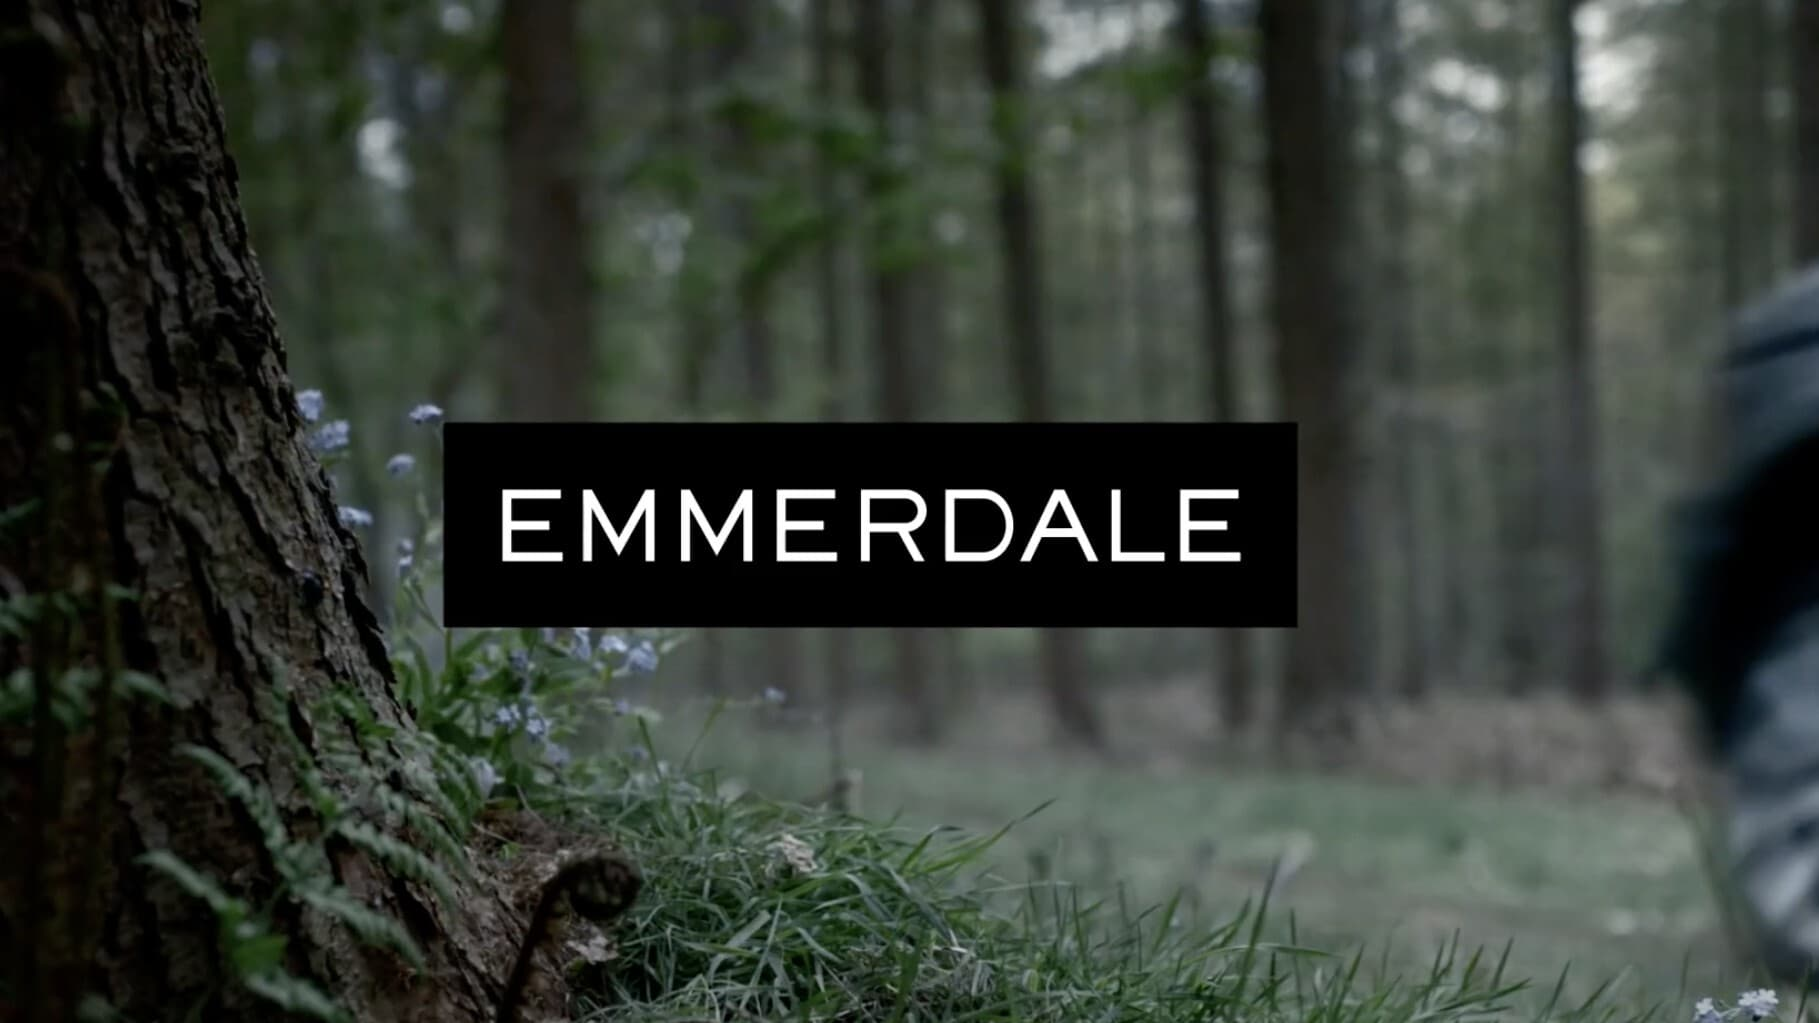 Emmerdale - Season 36 Episode 185 : August 10, 2007